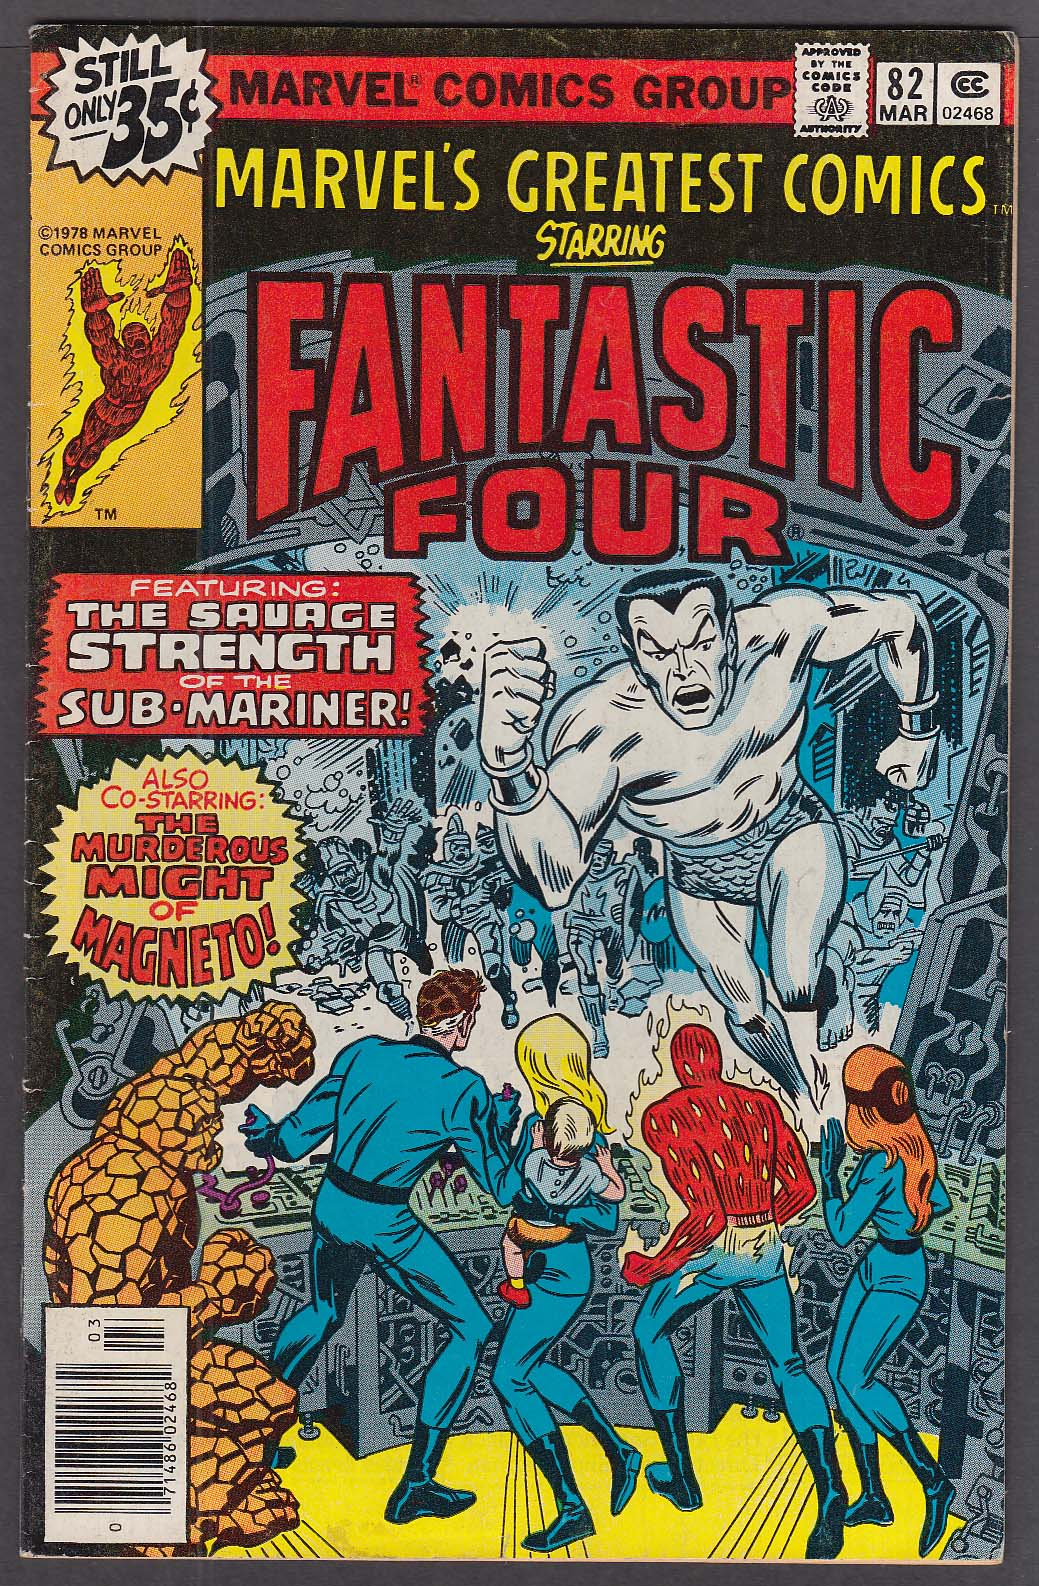 Image for MARVEL'S GREATEST COMICS #82 Fantastic Four comic book 3 1979